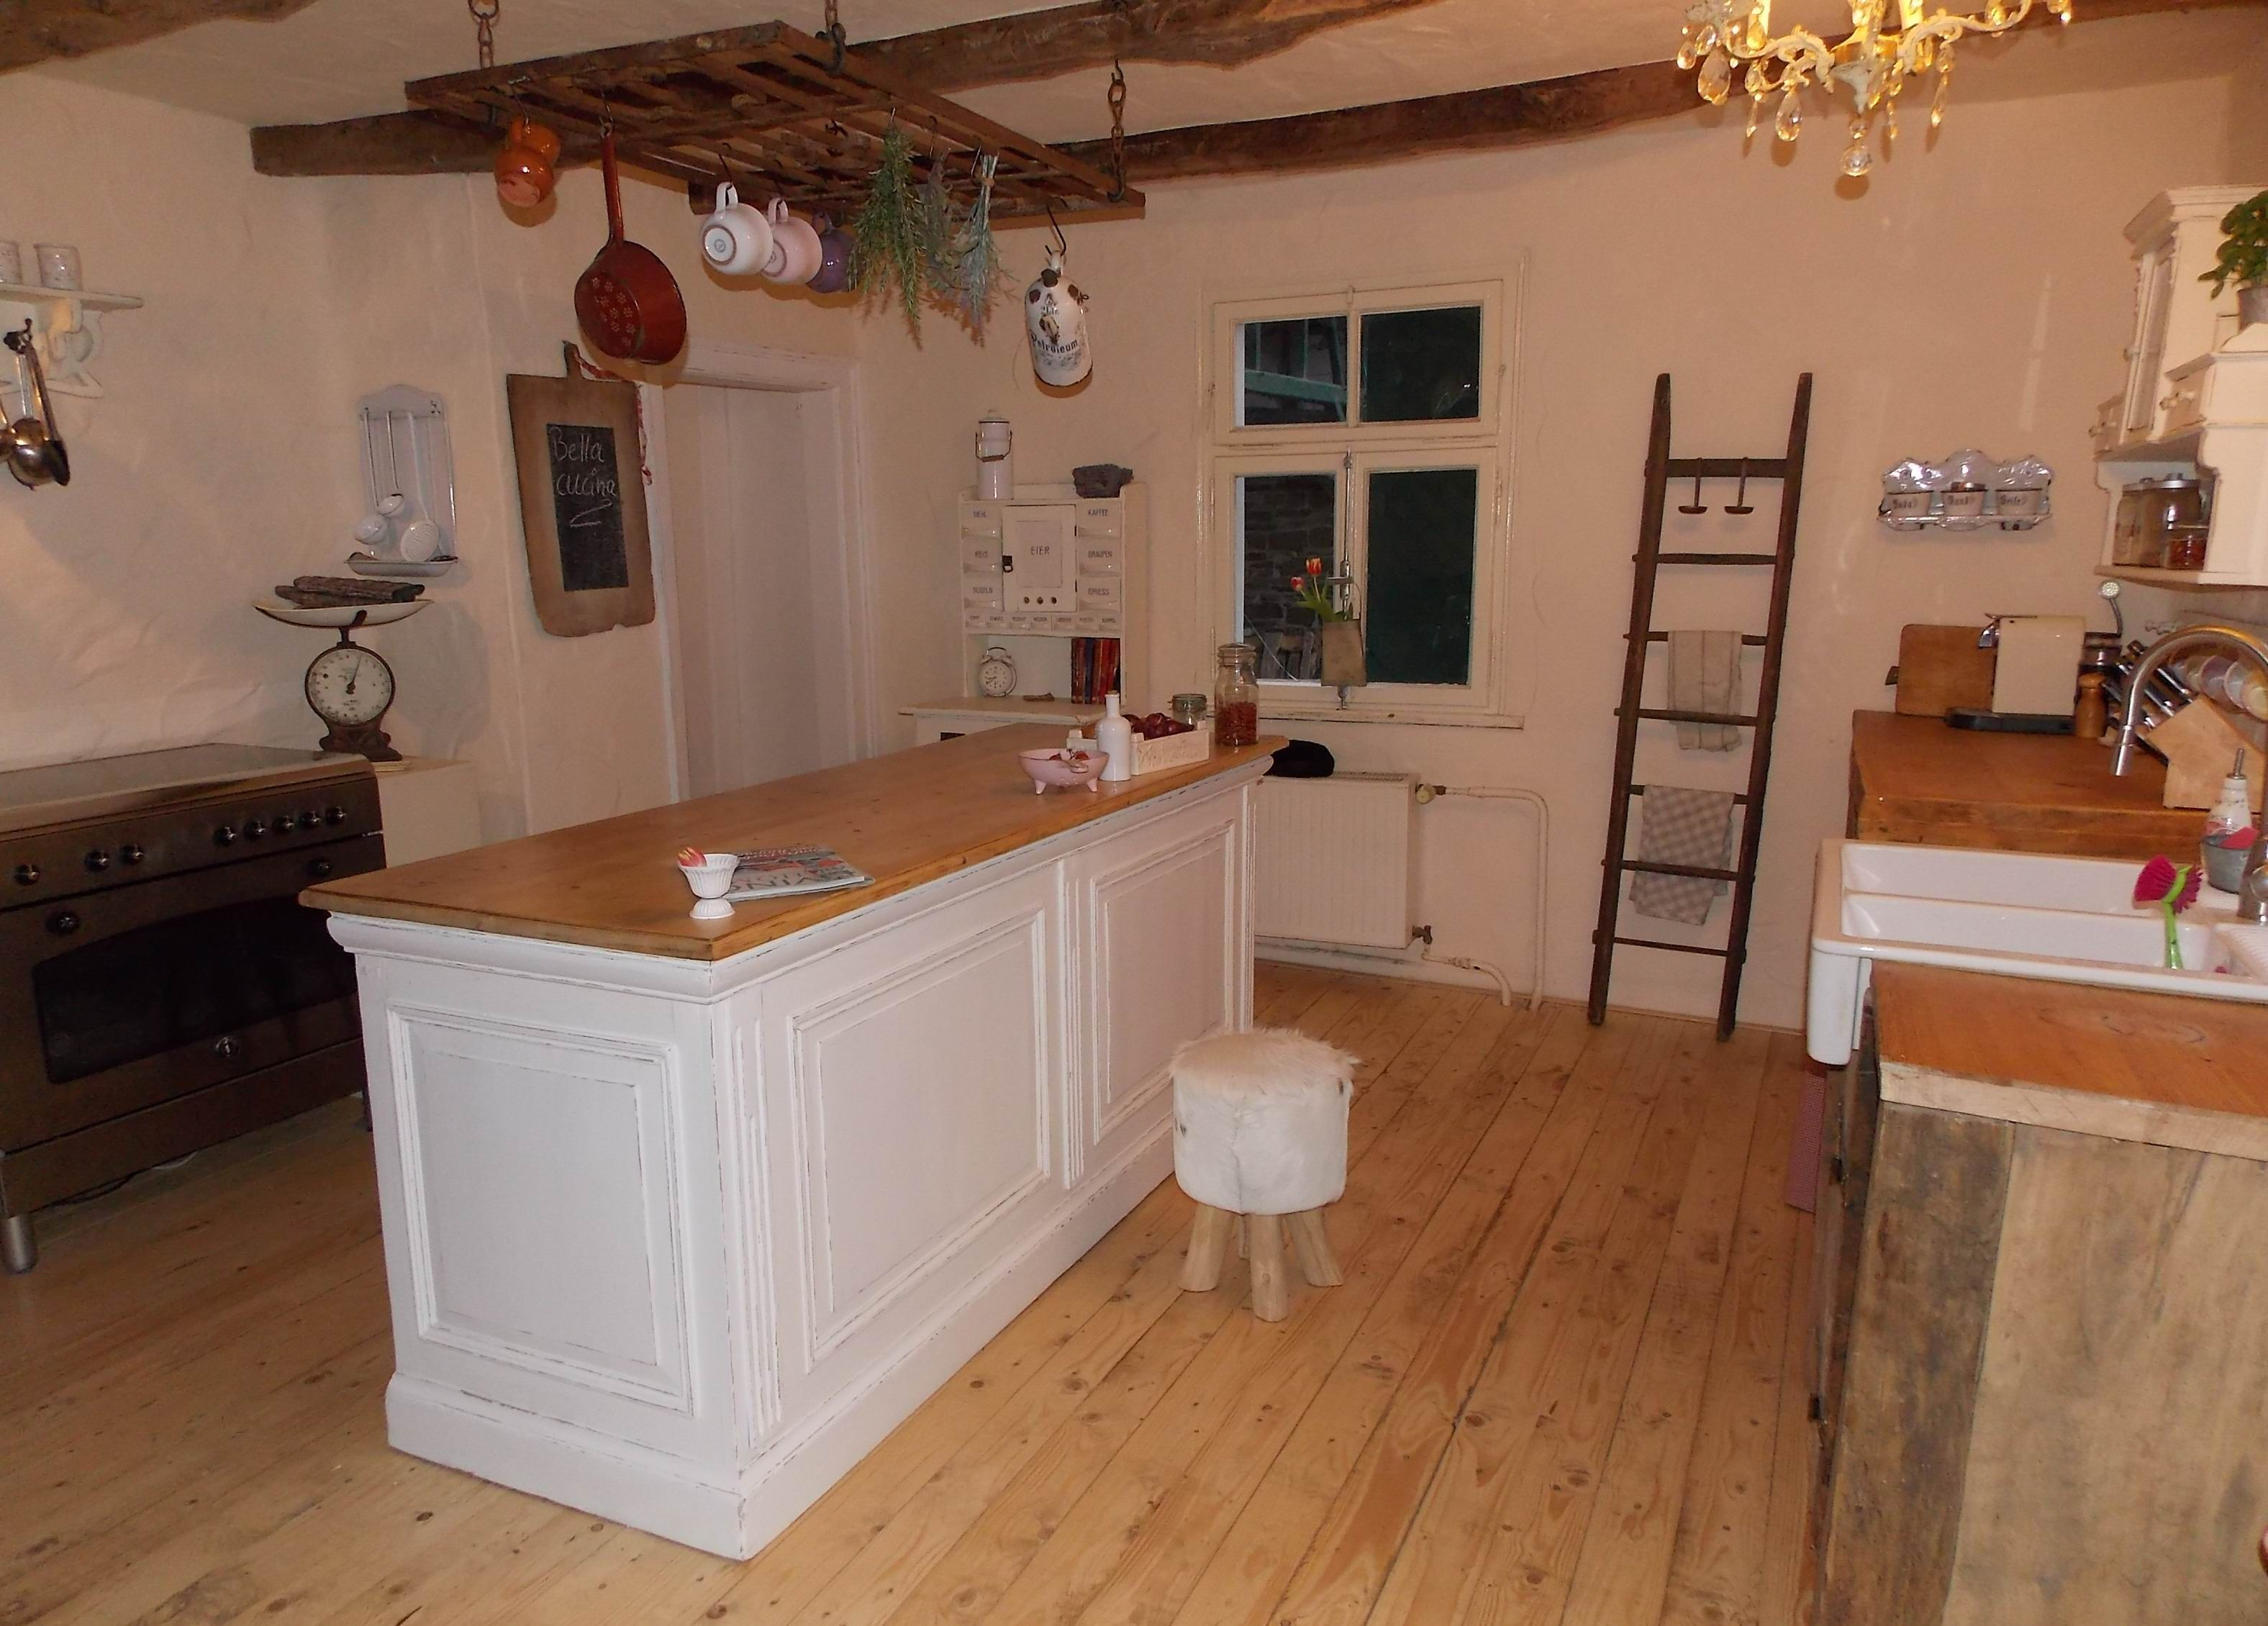 Kcheninsel in unserer shabby chic Landhaus Kche wwwcasamanolode  Unsere private